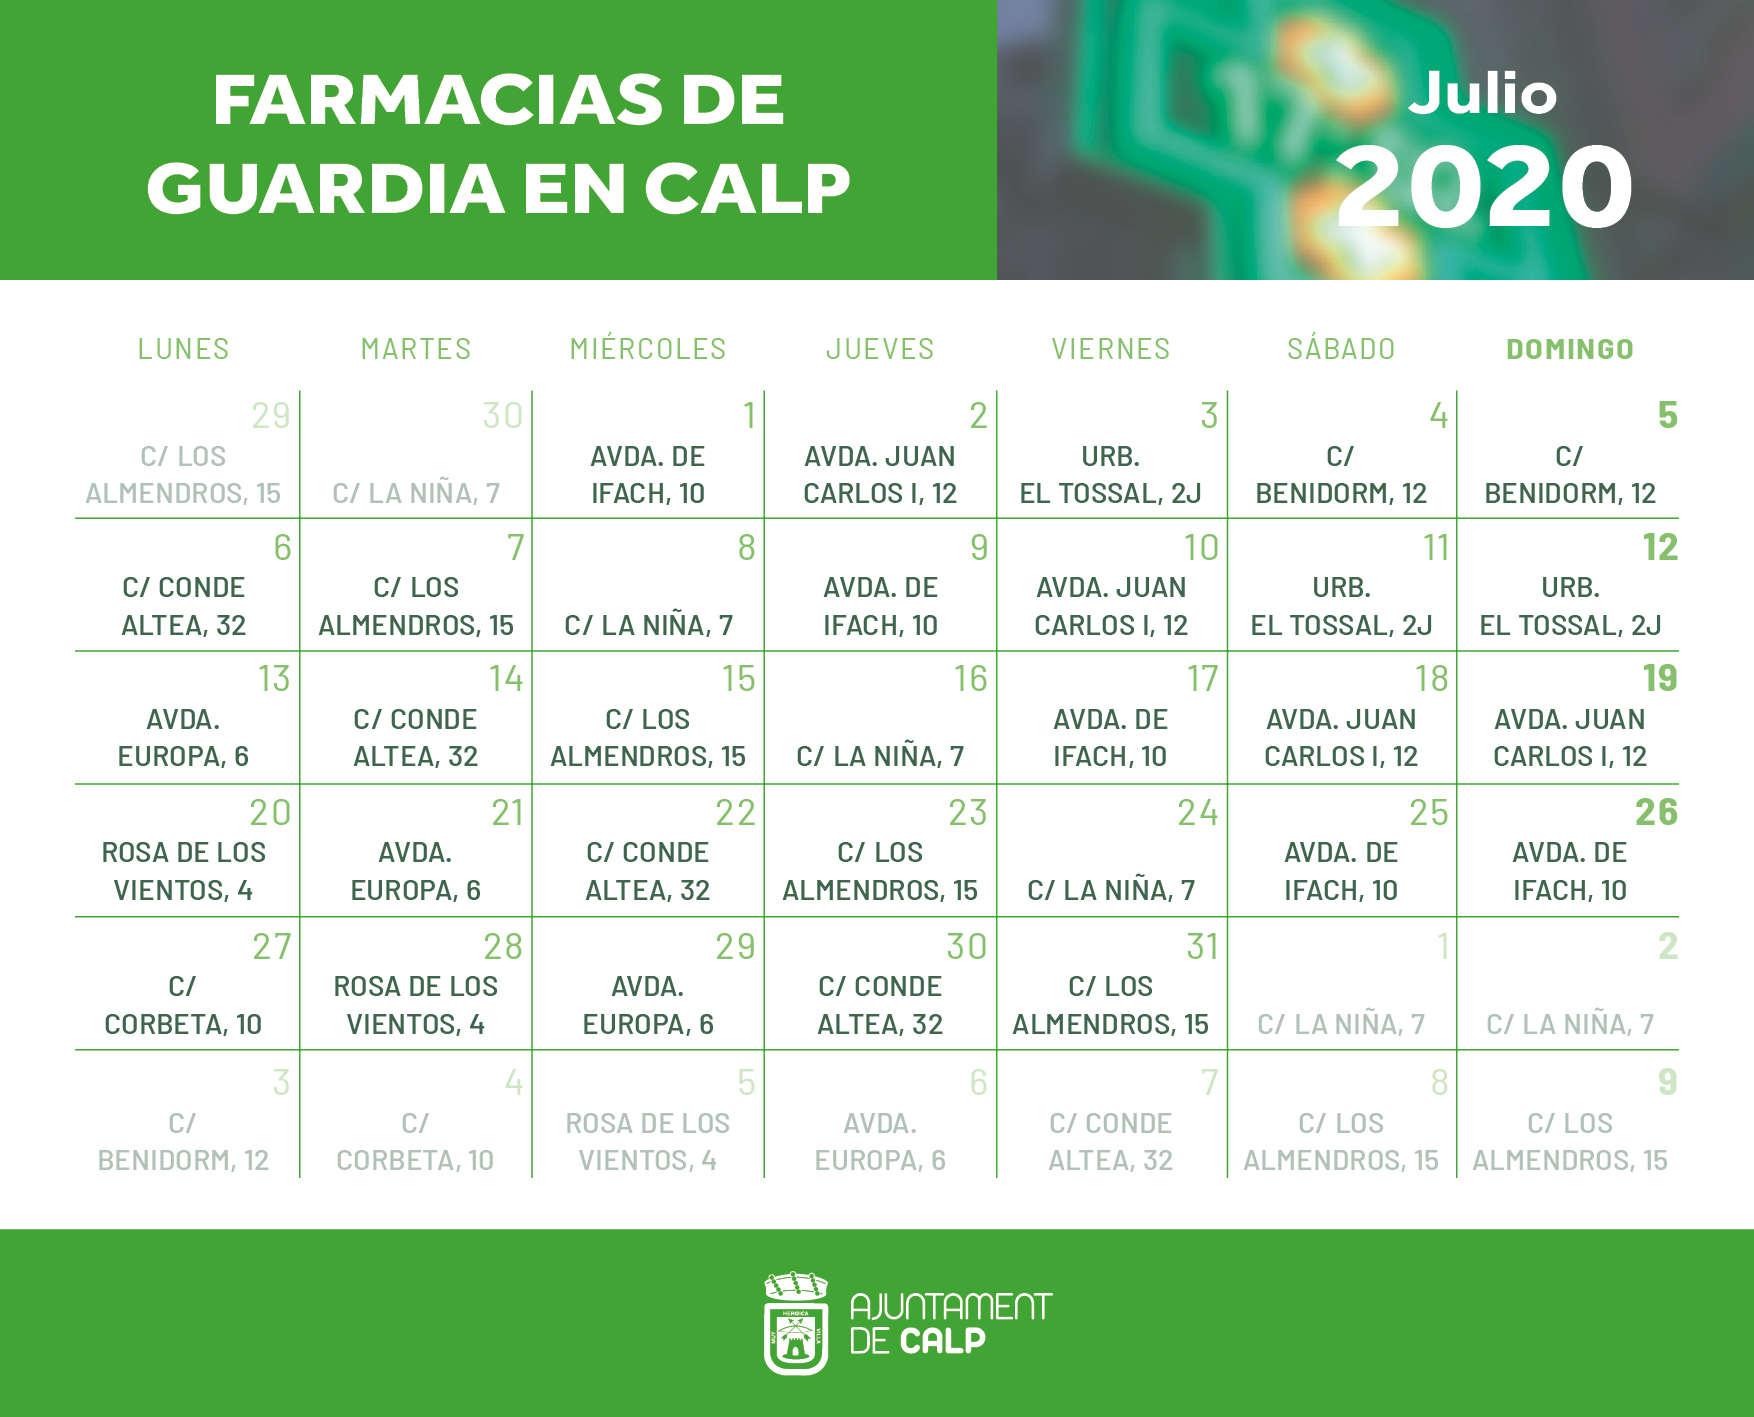 Farmacias de Guardia en Calp